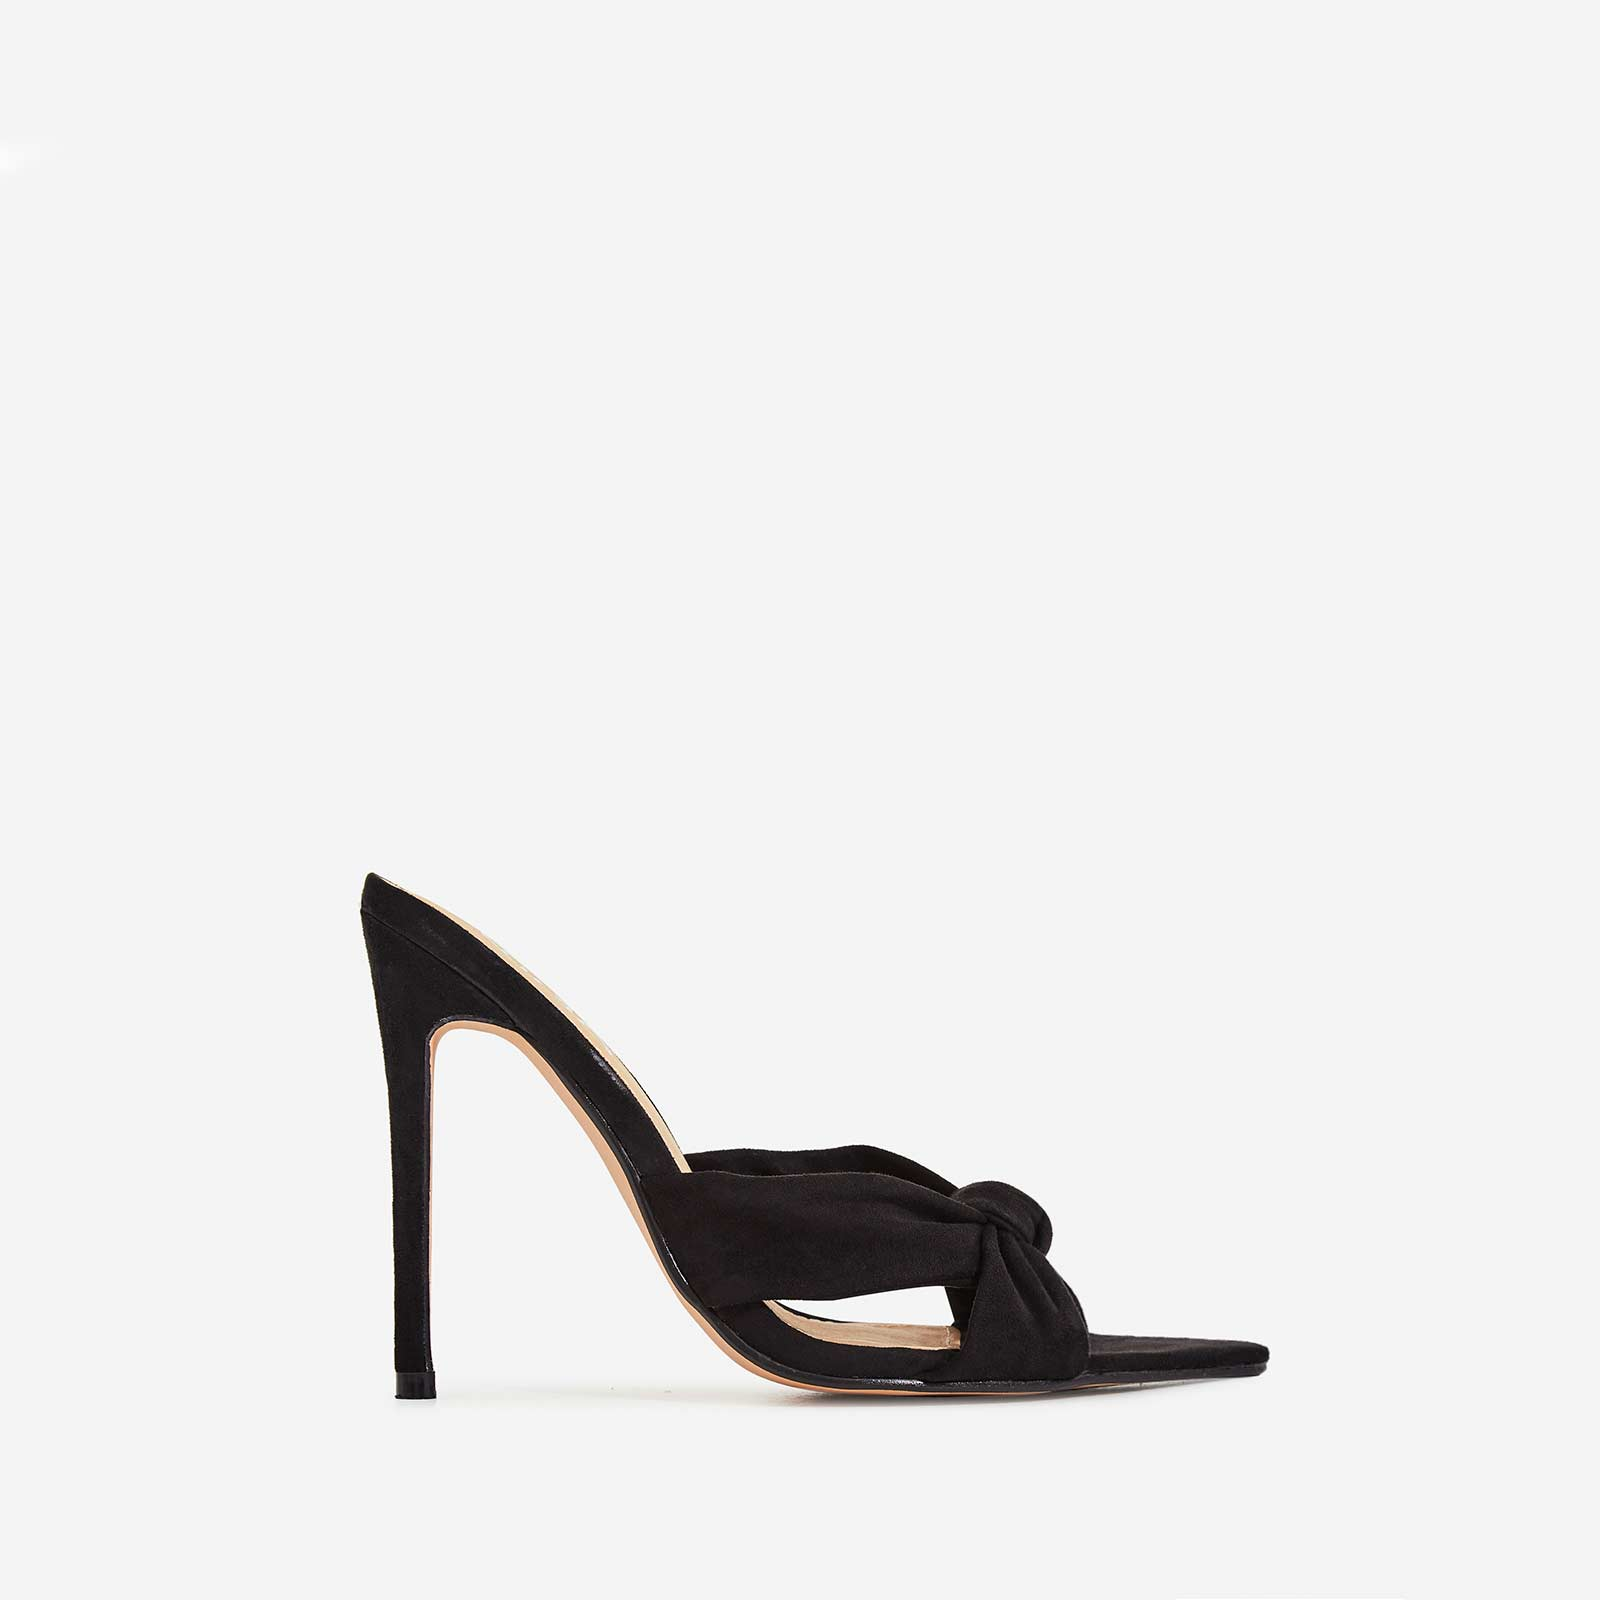 Saska Knot Detail Pointed Peep Toe Heel Mule In Black Faux Suede